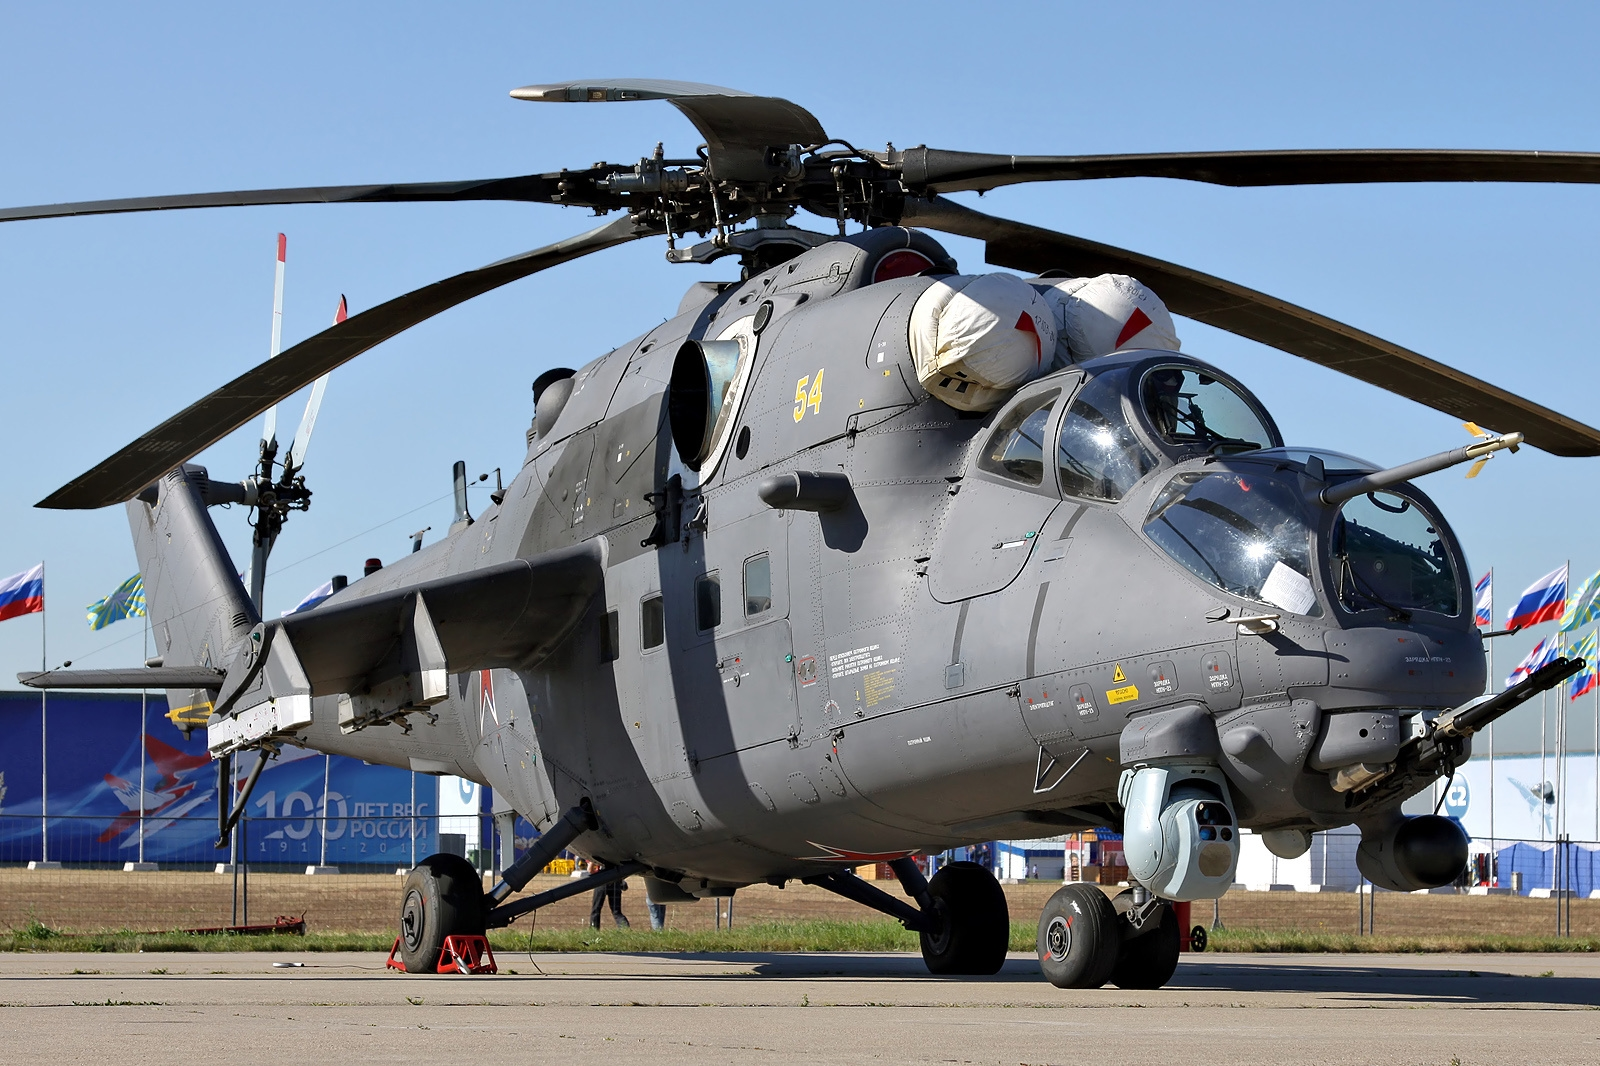 mi35m helicopter with Mil Mi 24 on sthash CGe0EMhq further Mil mi 24 additionally Rusia  enzo Suministrar Armas Irak together with 102131 in addition World Helikopter Siluman Generasi.